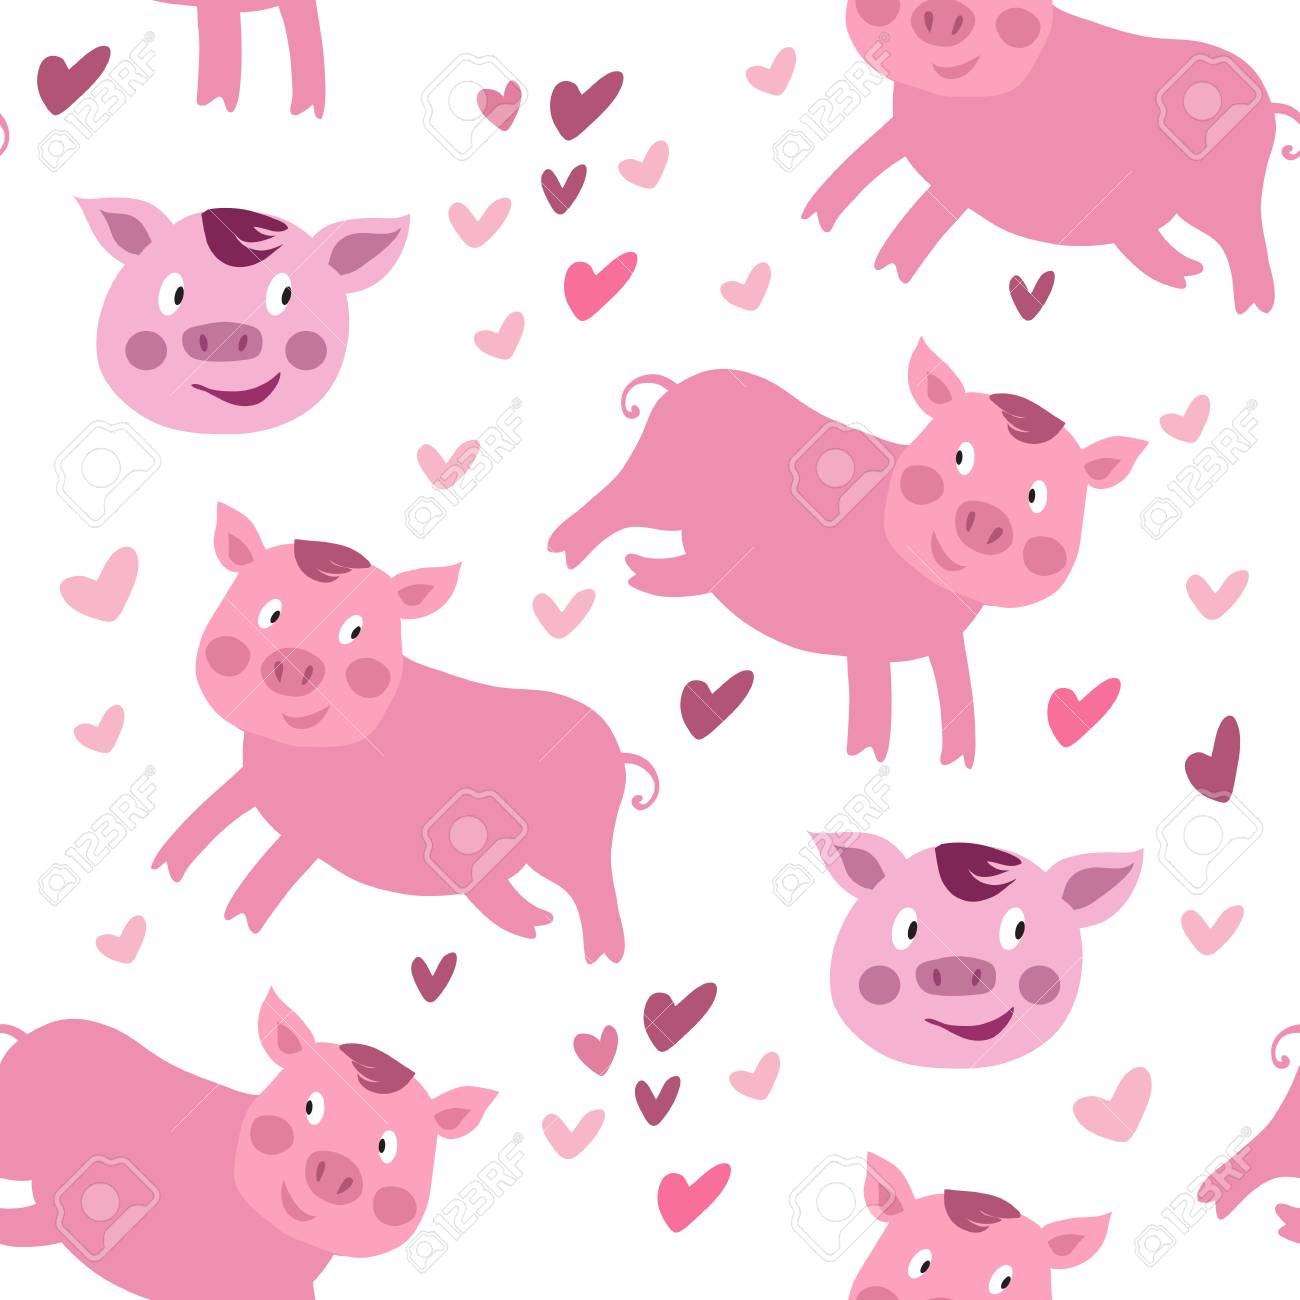 Beautiful seamless pattern with funny cute pink pigs in cartoon style. Pig - symbol 2019